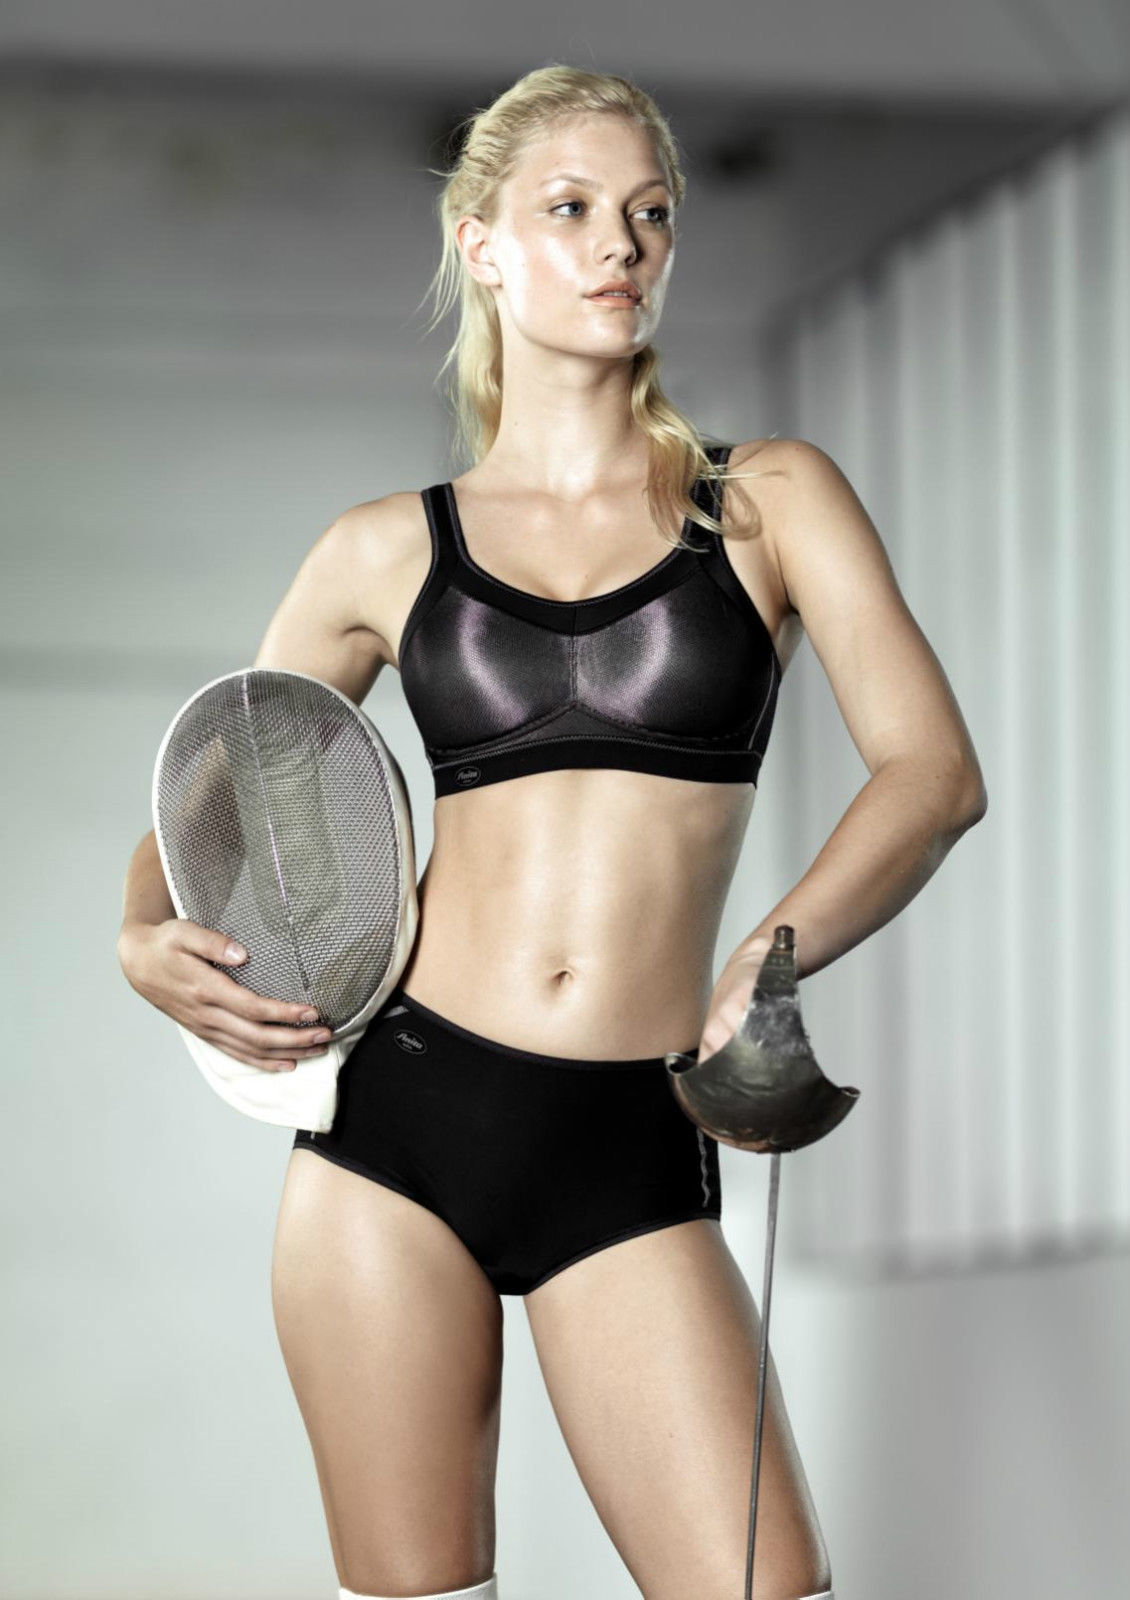 dbb92749f866a Anita Momentum 5529 Metallic Black Maximum Support Sports Bra NWT Large  Sizes